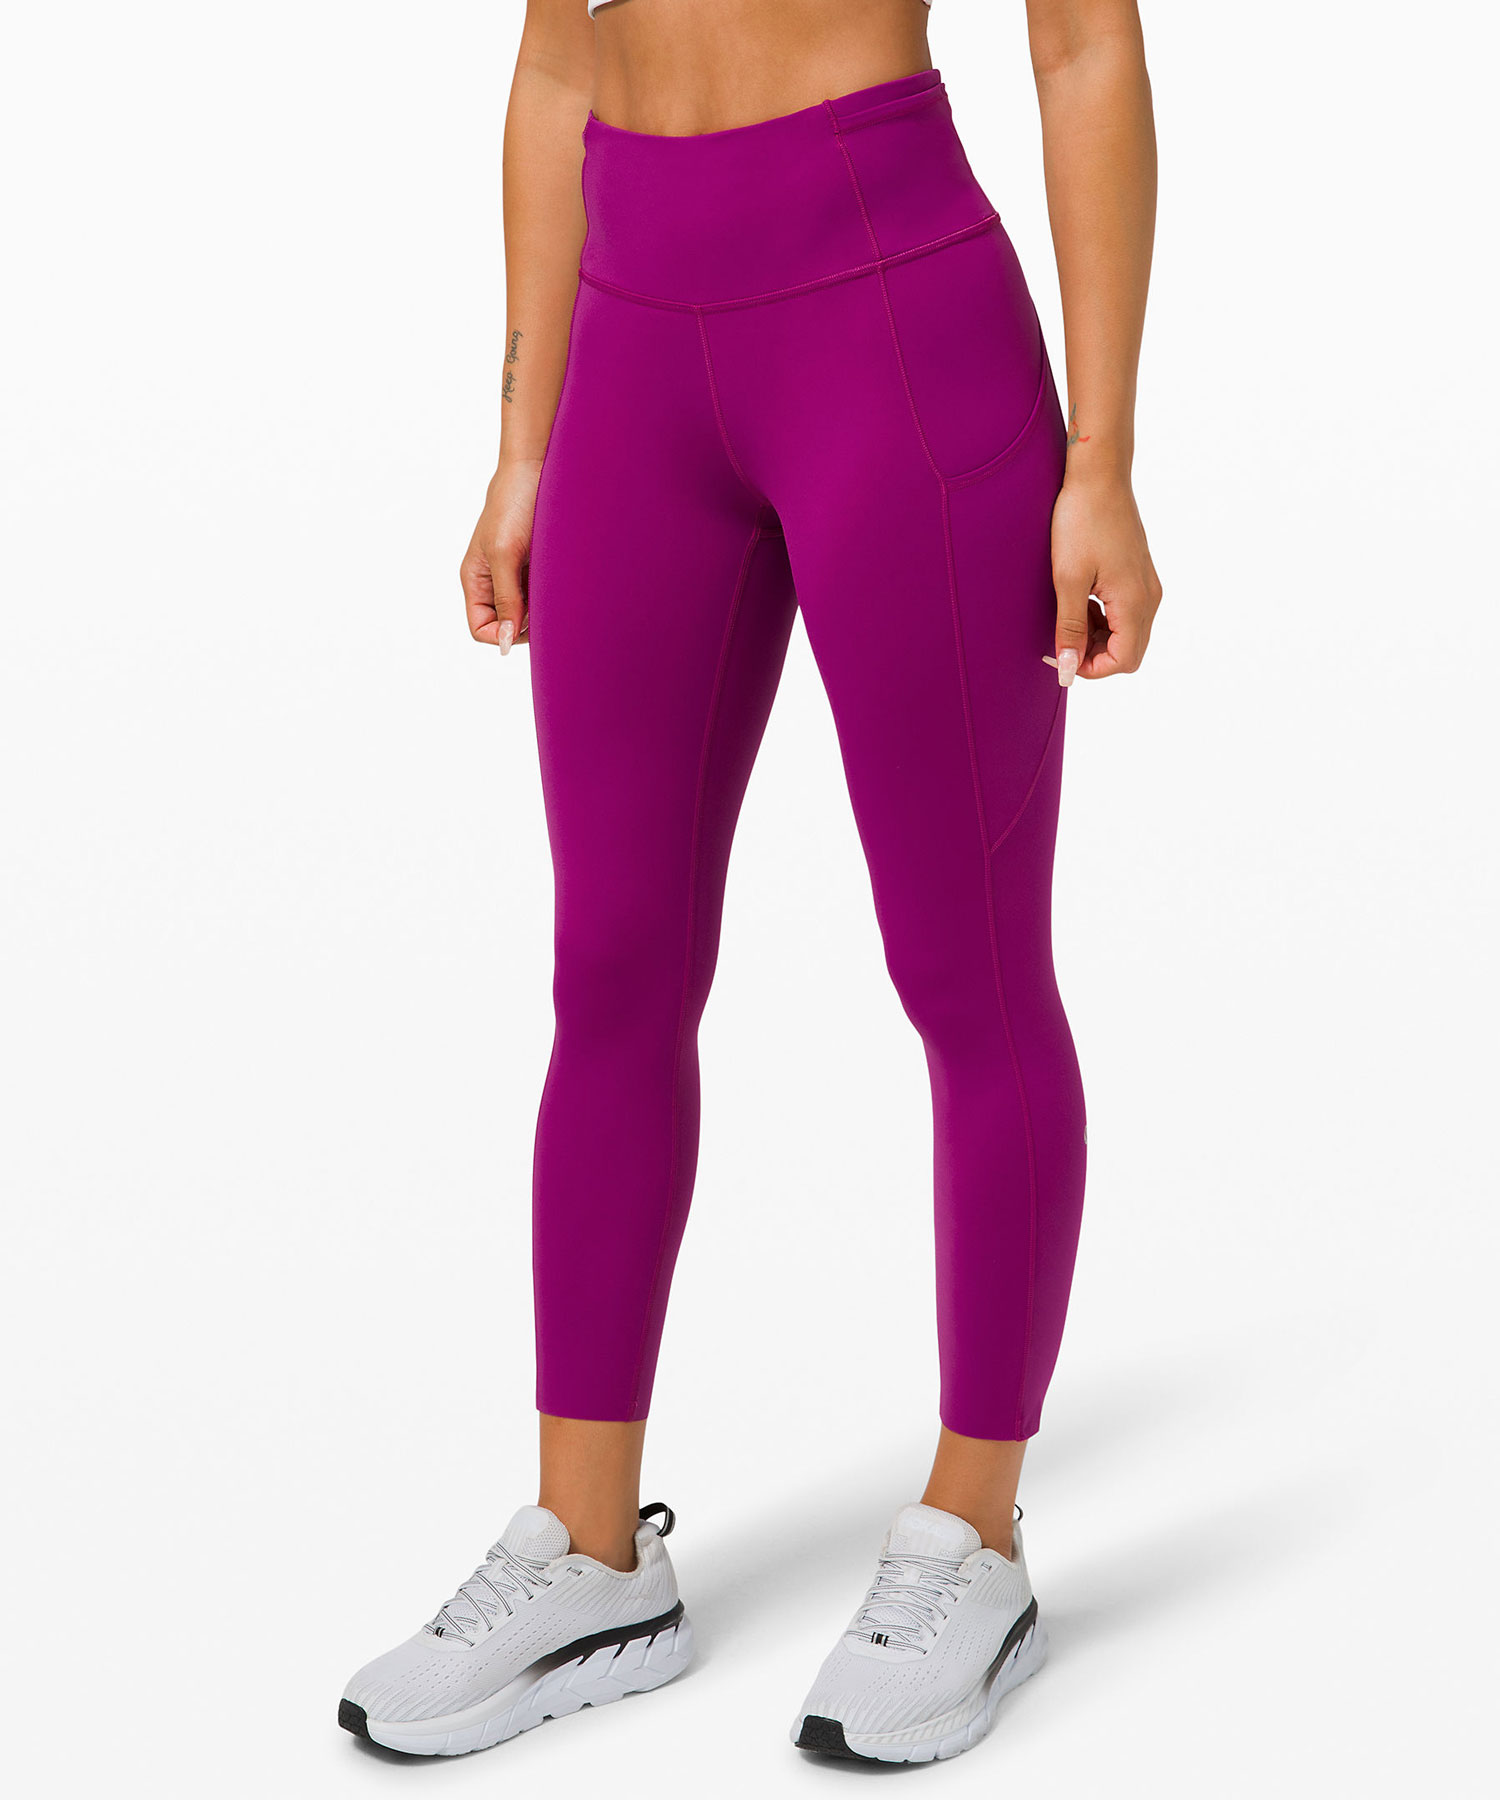 Best gifts, gift ideas for women - For the Active Rester: Lululemon Fast and Free High-Rise Crop II